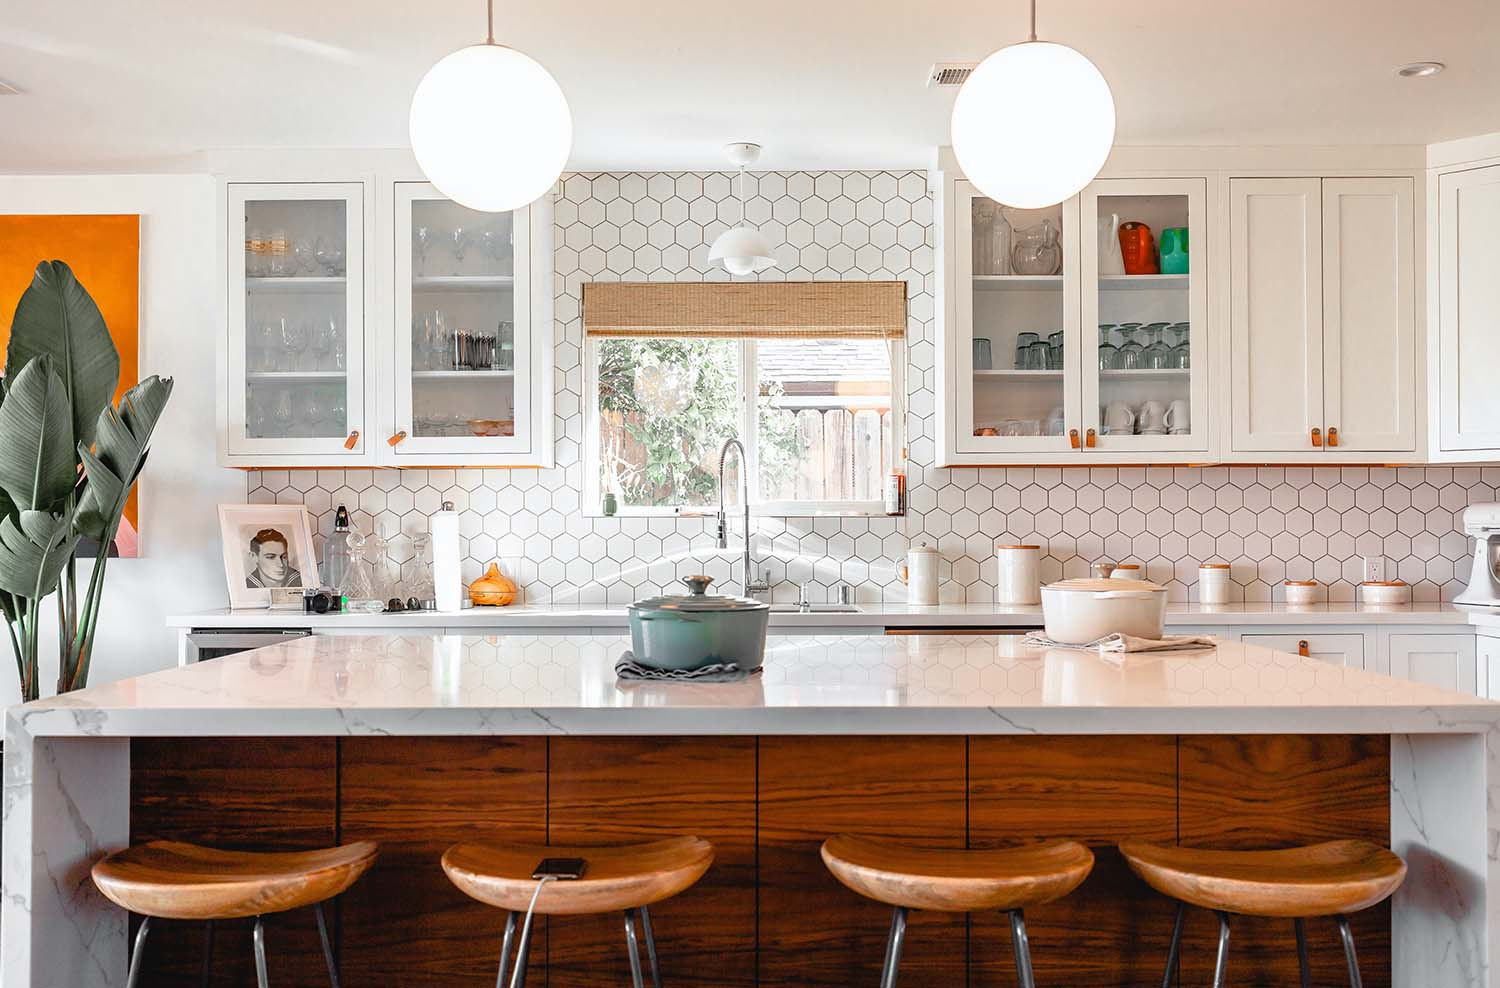 Design Inspirations for a Timeless Home